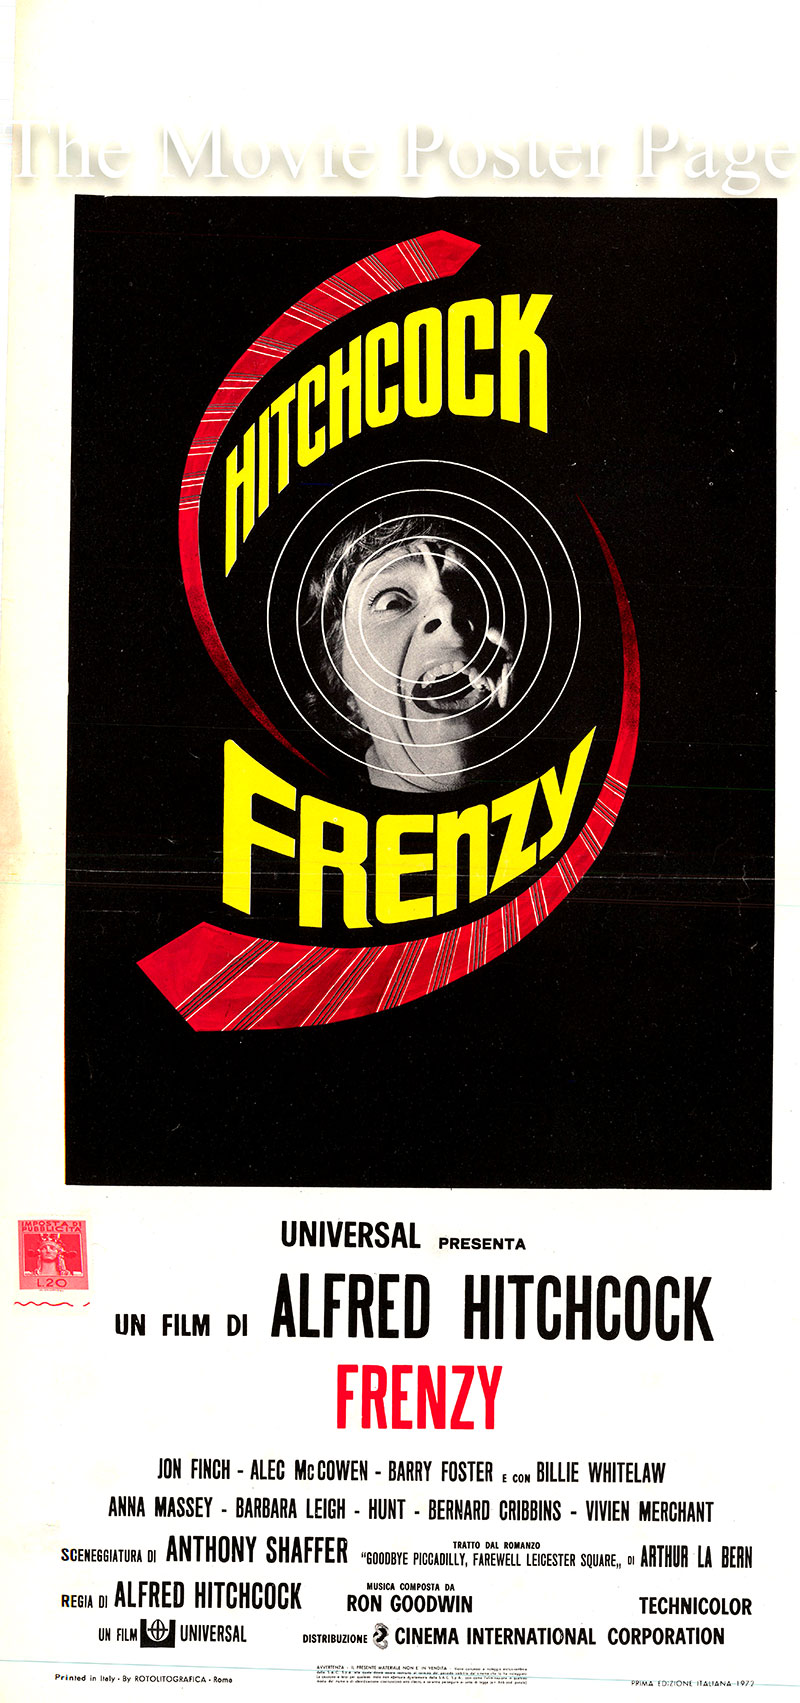 Pictured is an Italian locandina poster for the 1972 Alfred Hitchcock film <i>Frenzy</i> based on the novel of the same title by Alfred La Bern and starring Jon Finch as Richard Blaney.